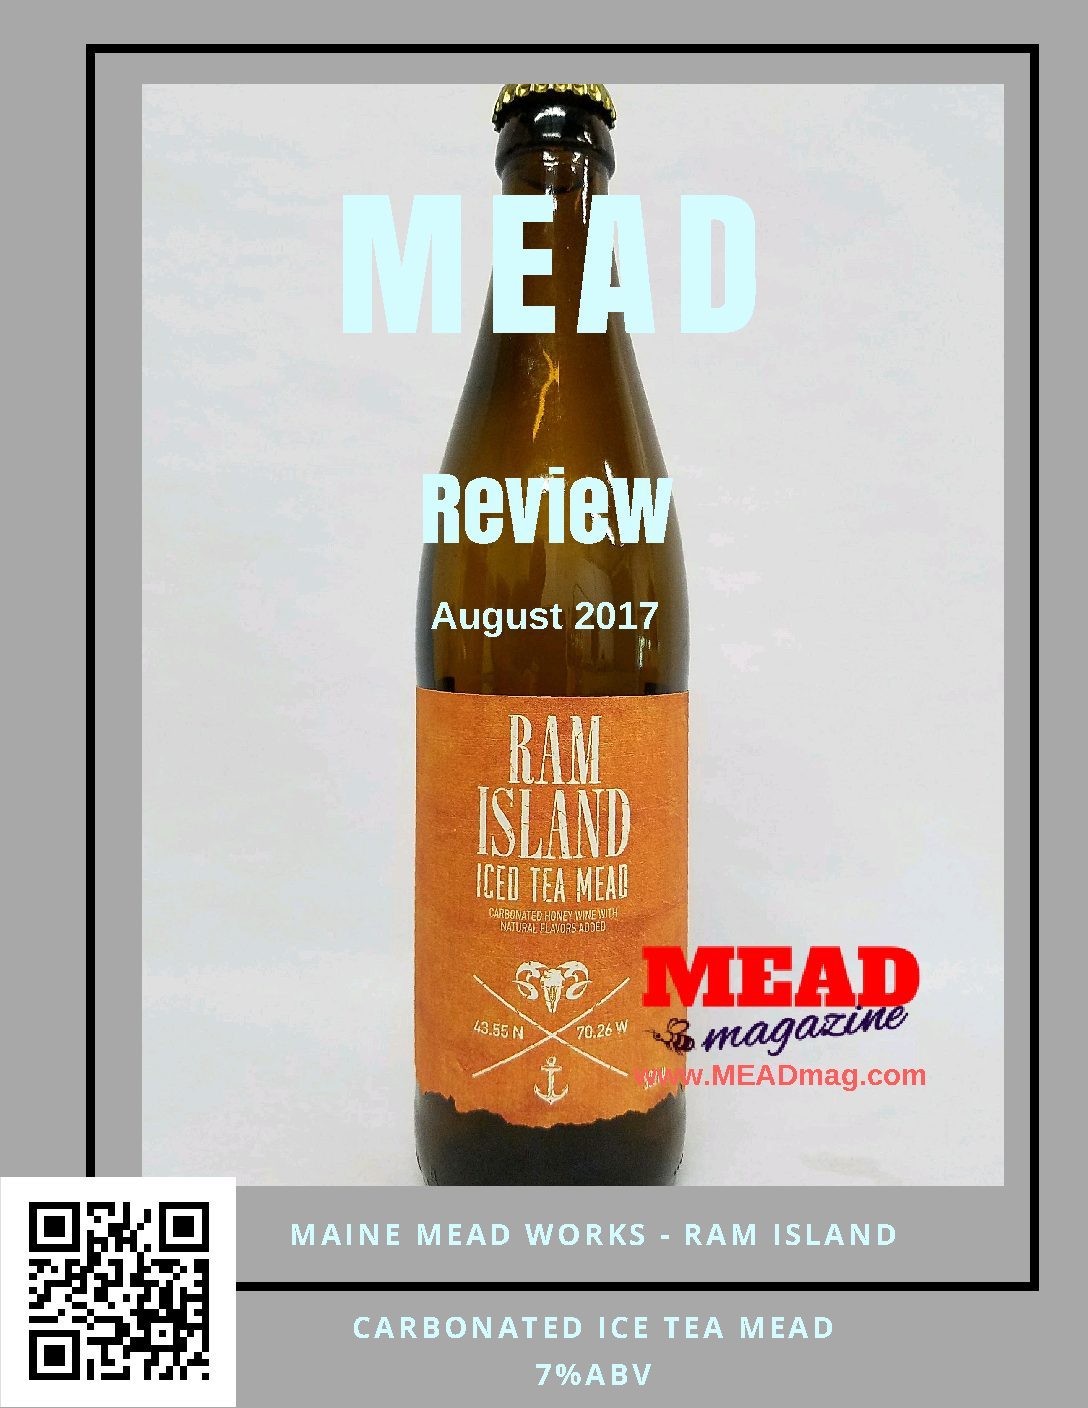 Maine Mead Works: Ram Island